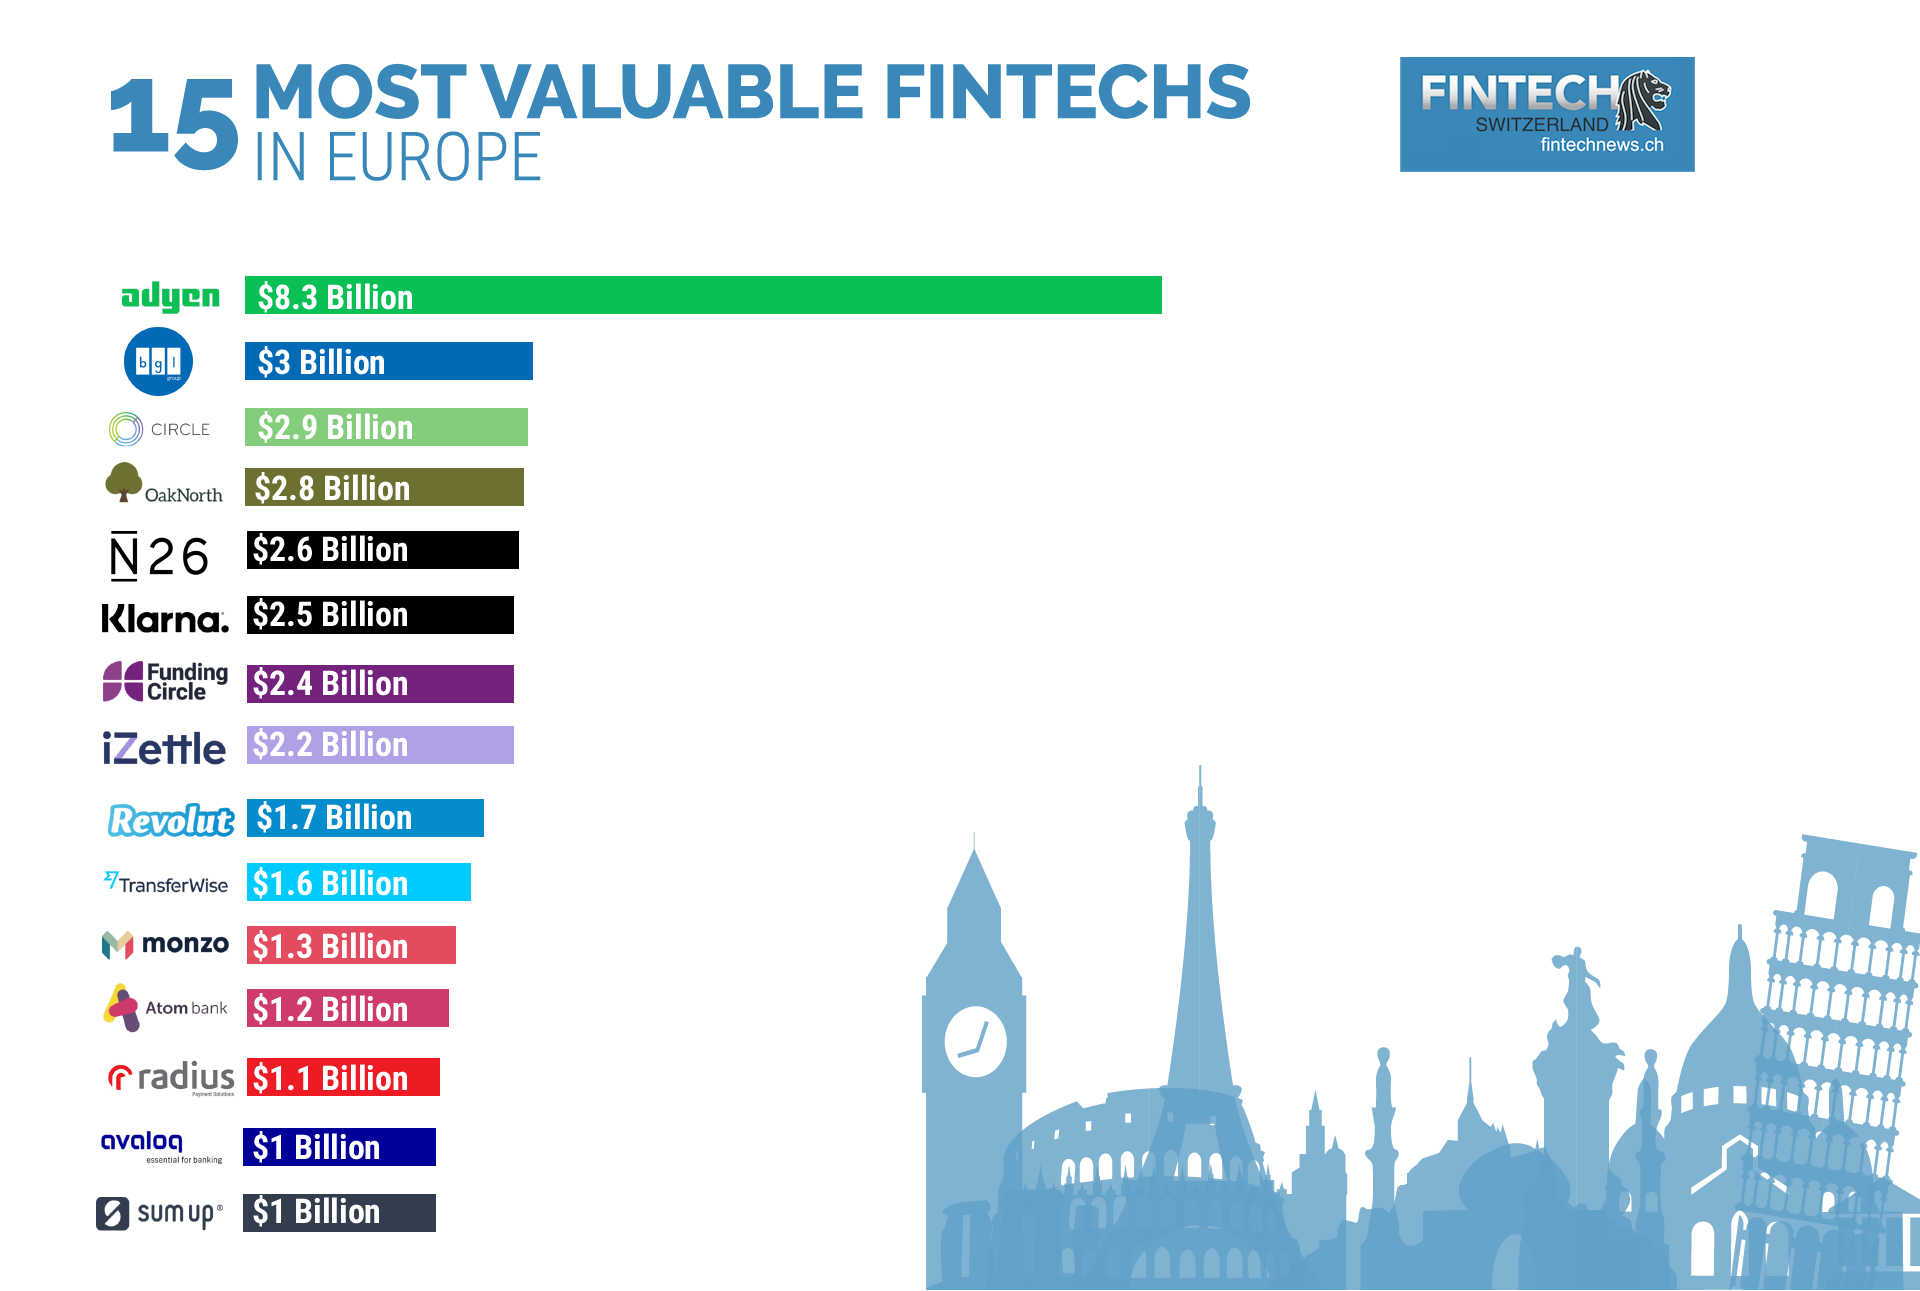 15 Most Valuable Fintech Startups and Companies in Europe | Fintech